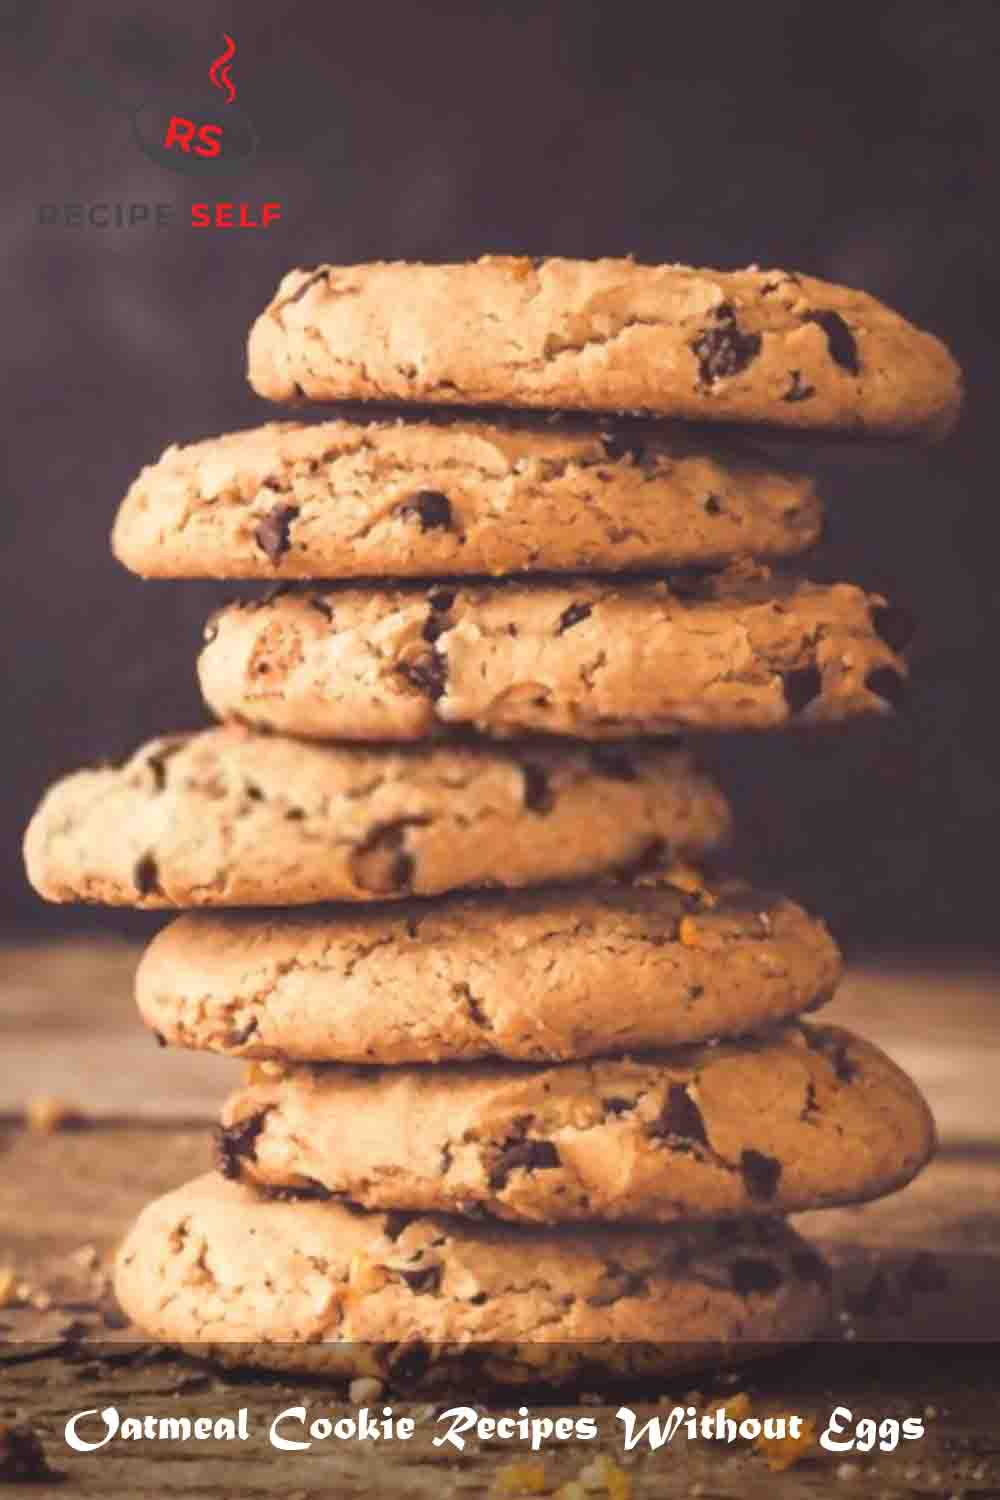 Oatmeal Cookie Recipes Without Eggs